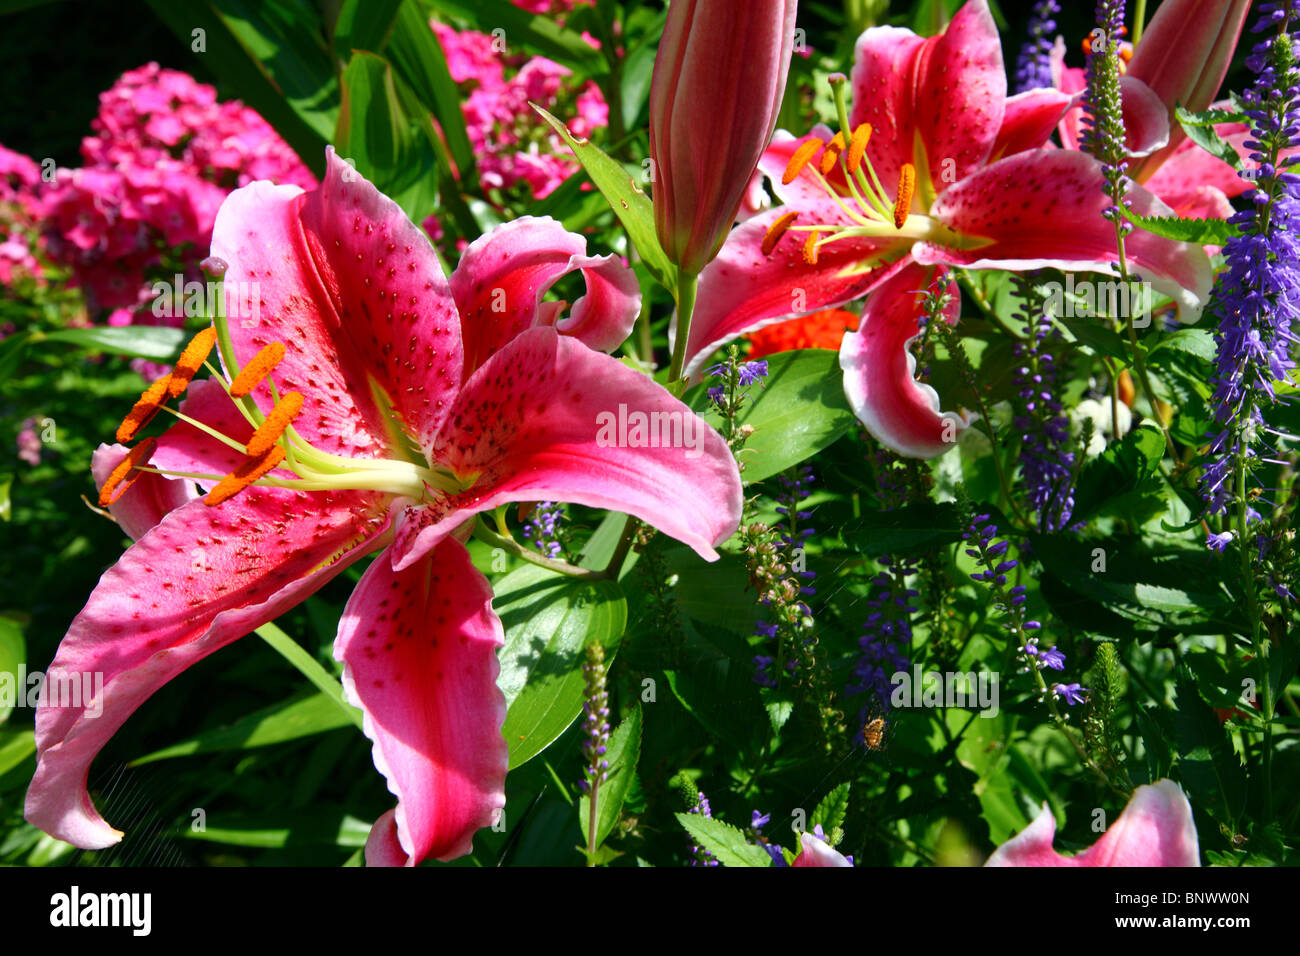 Typical garden, with lots of flowers, some tropical, Guernsey, Channel Islands, UK, Europe - Stock Image